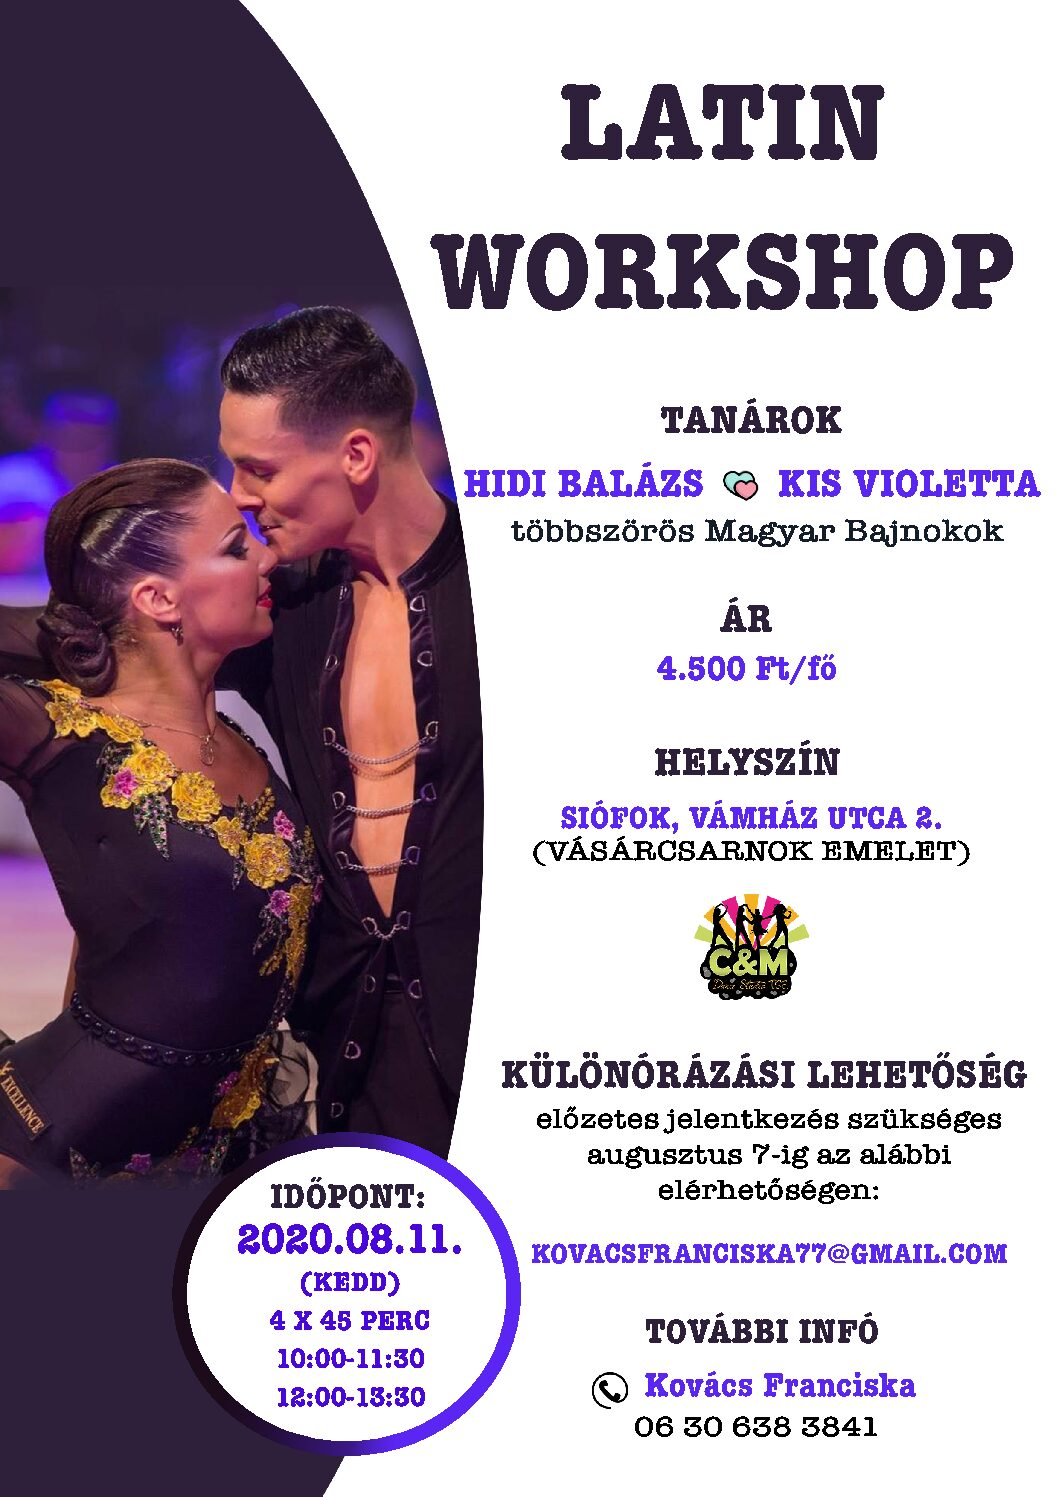 Latin Workshop Lettivel és Balázzsal